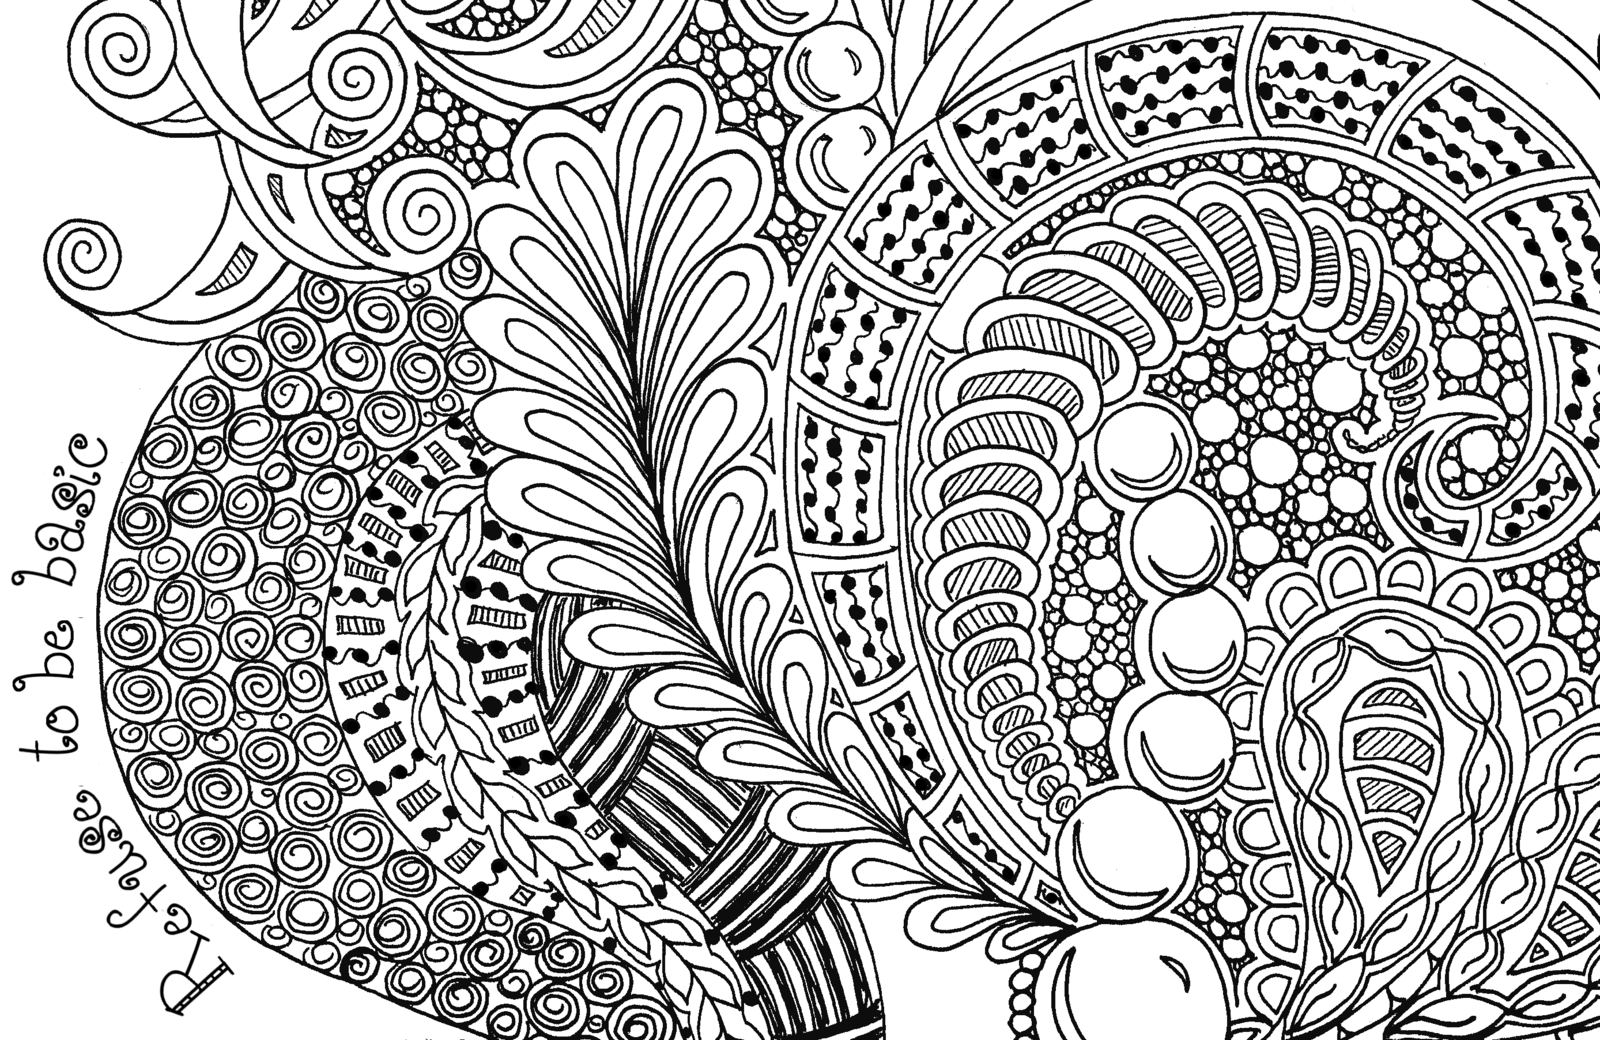 coloring pages zentangles : Free Coloring Pages Zentangle Zentangle Patterns Coloring Pages High Quality Coloring Pages